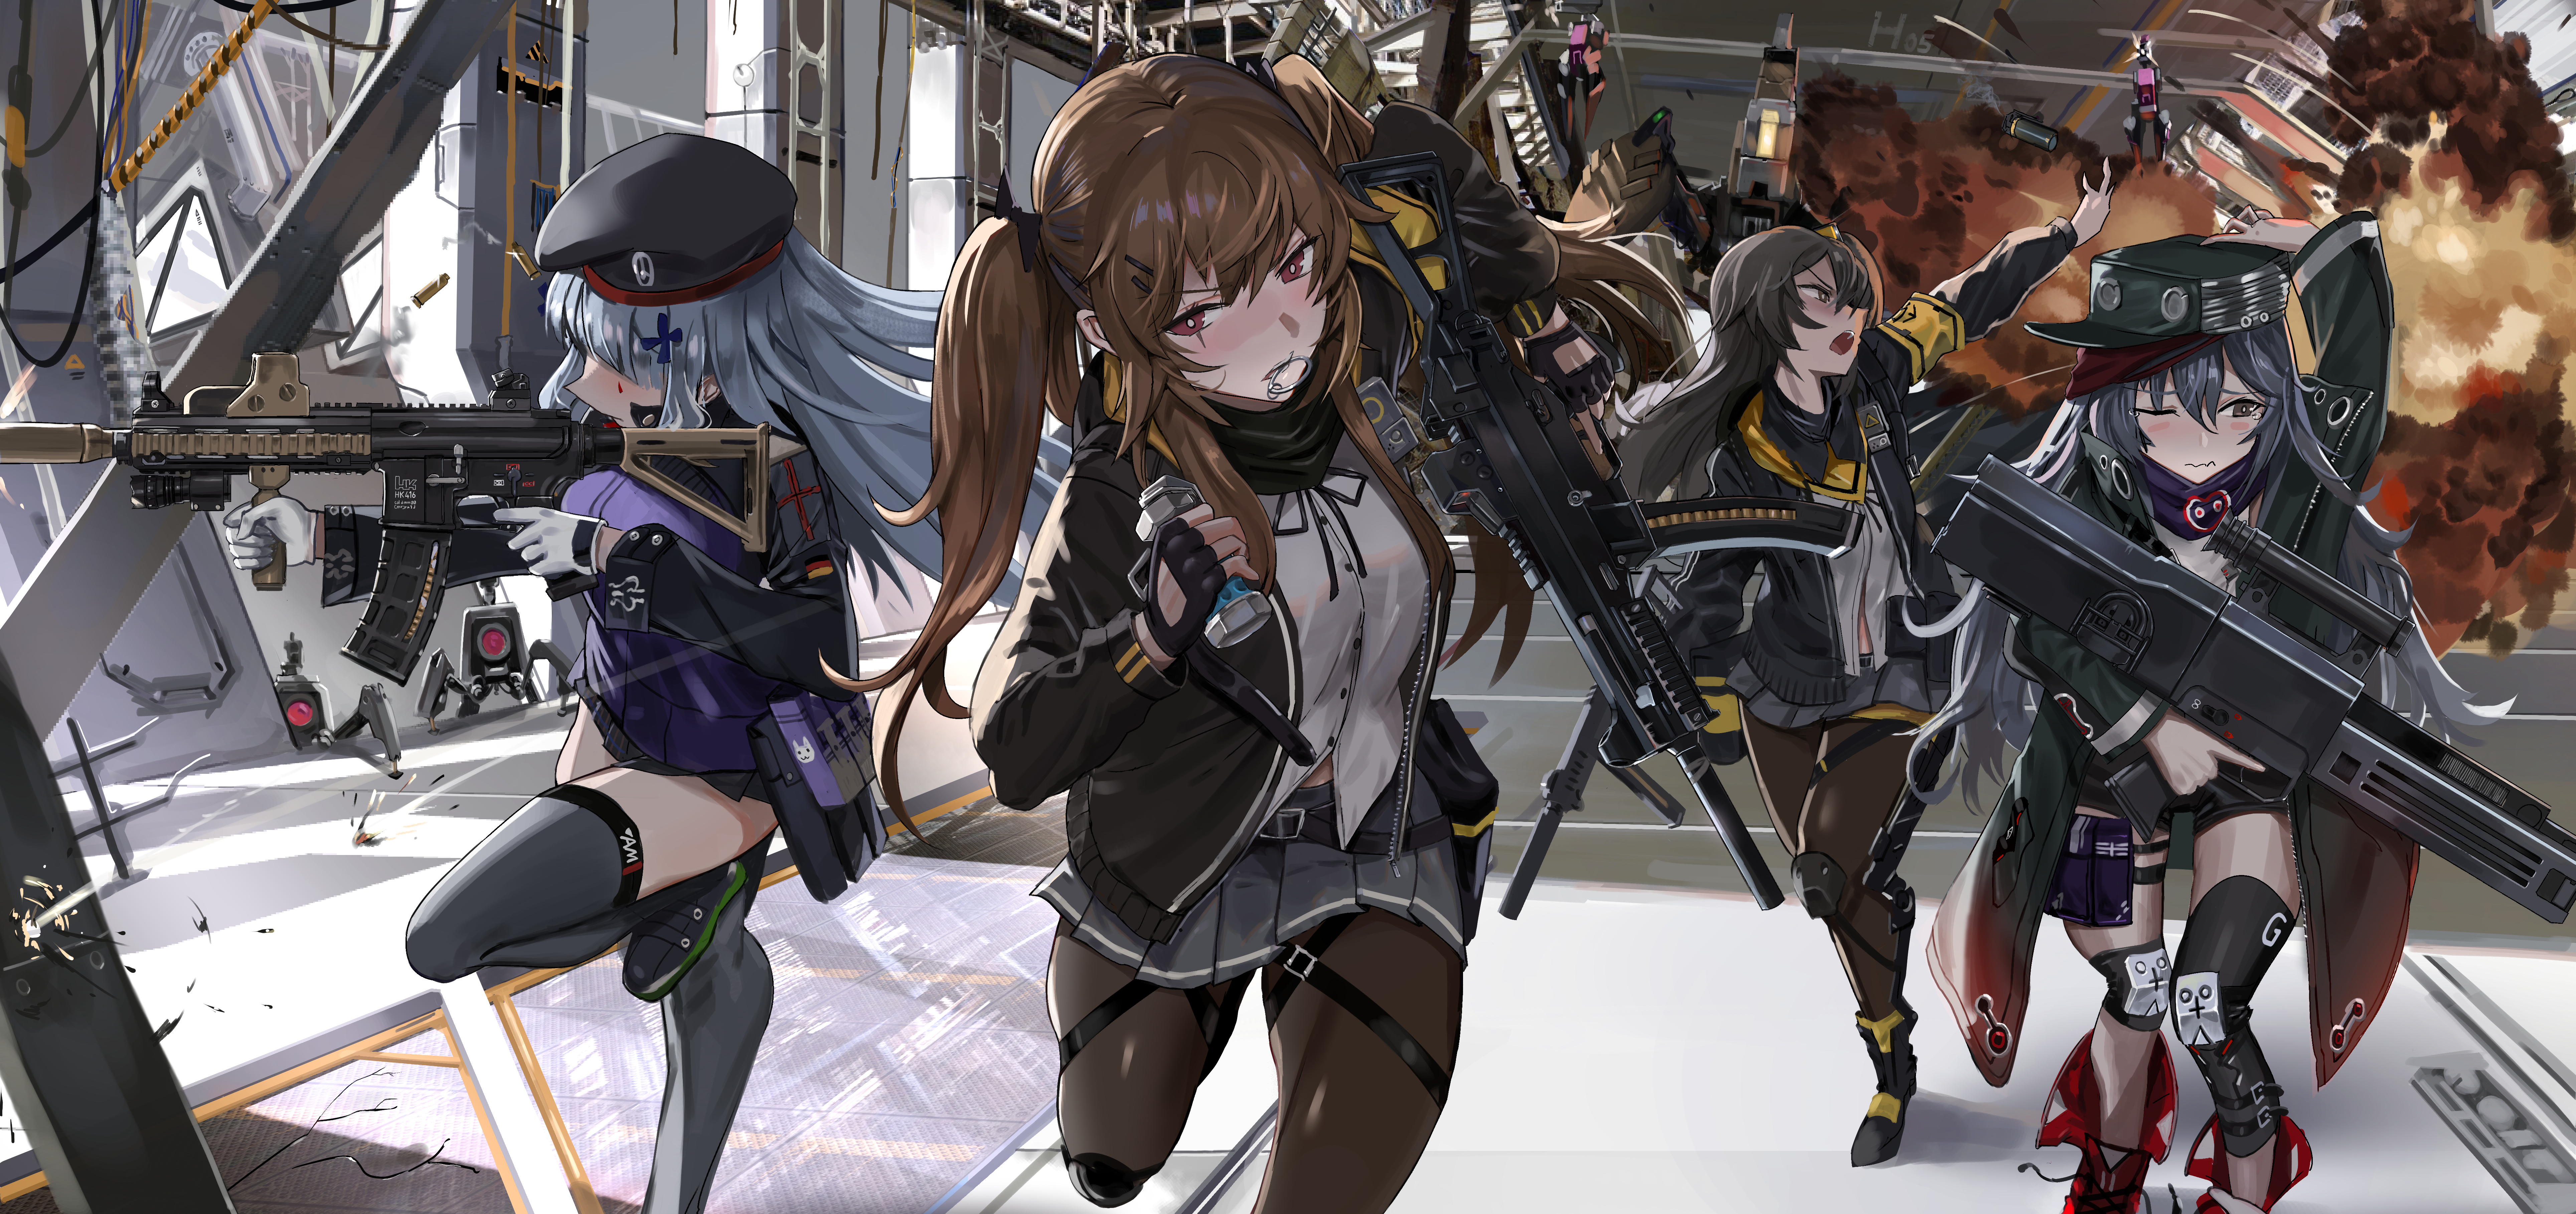 52 Hk416 Girls Frontline Hd Wallpapers Background Images